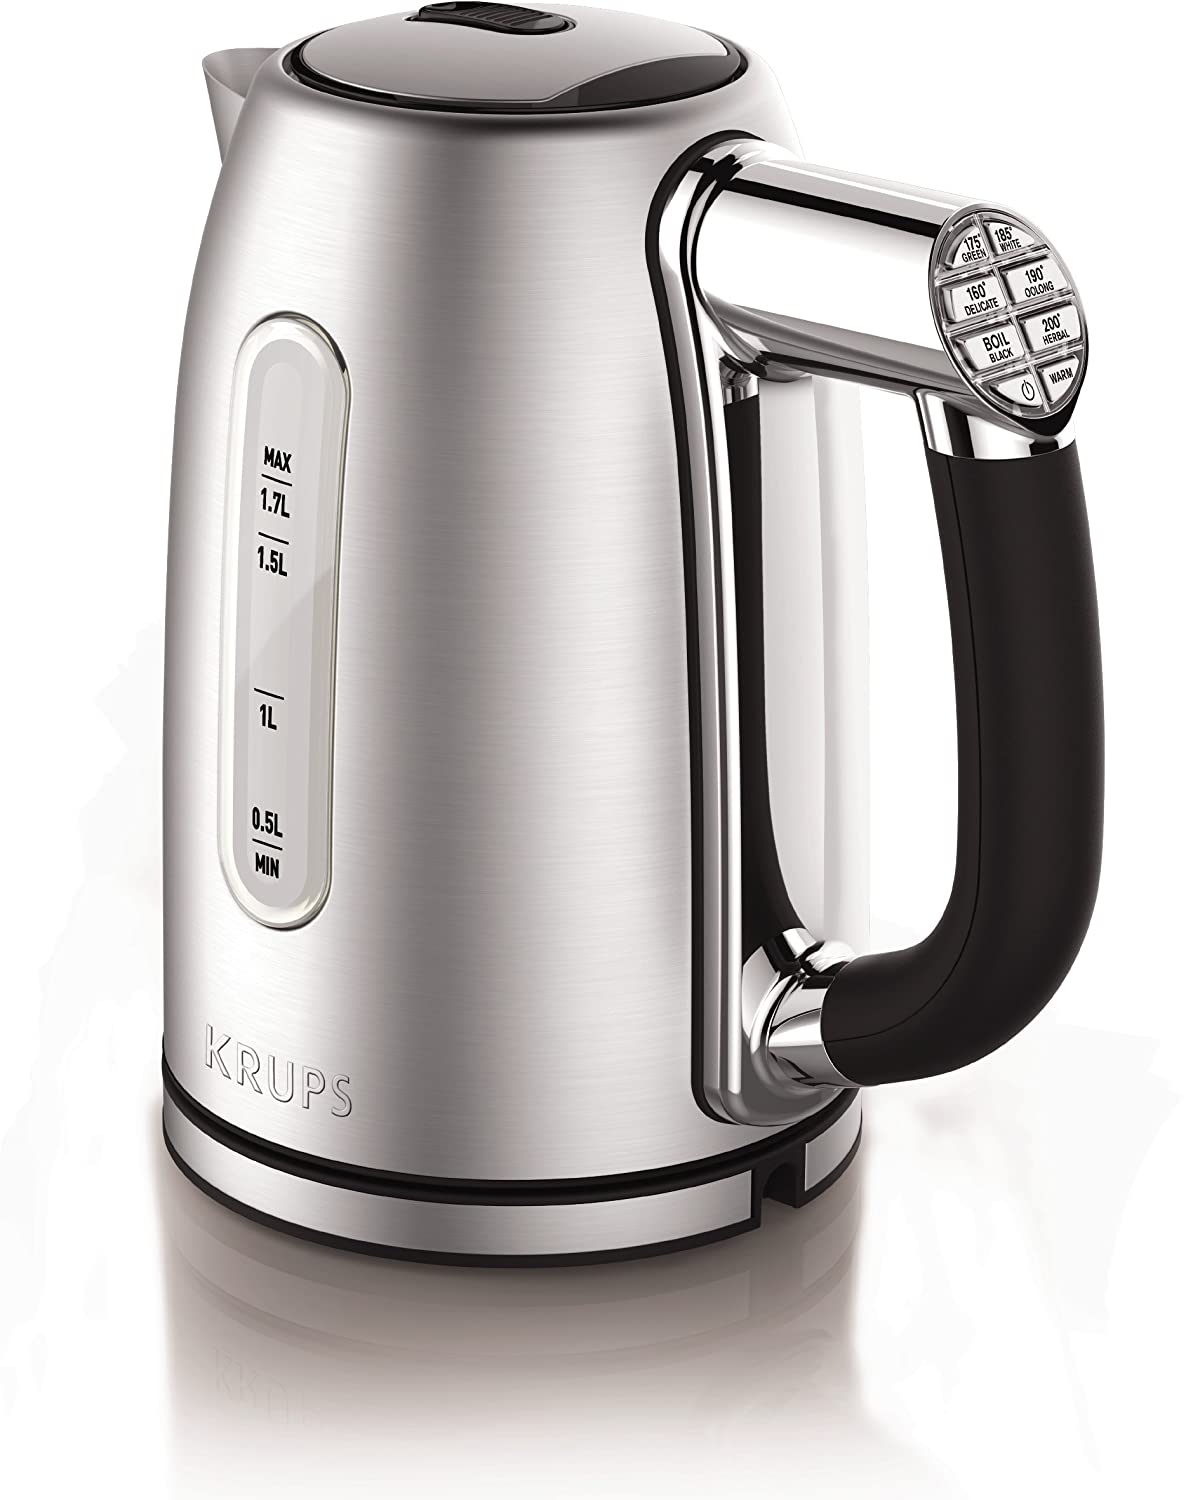 KRUPS 8010000092 BW710D51 Adjustable Temperature Kettle with Stainless Steel Housing, 1.7-Liter Silver